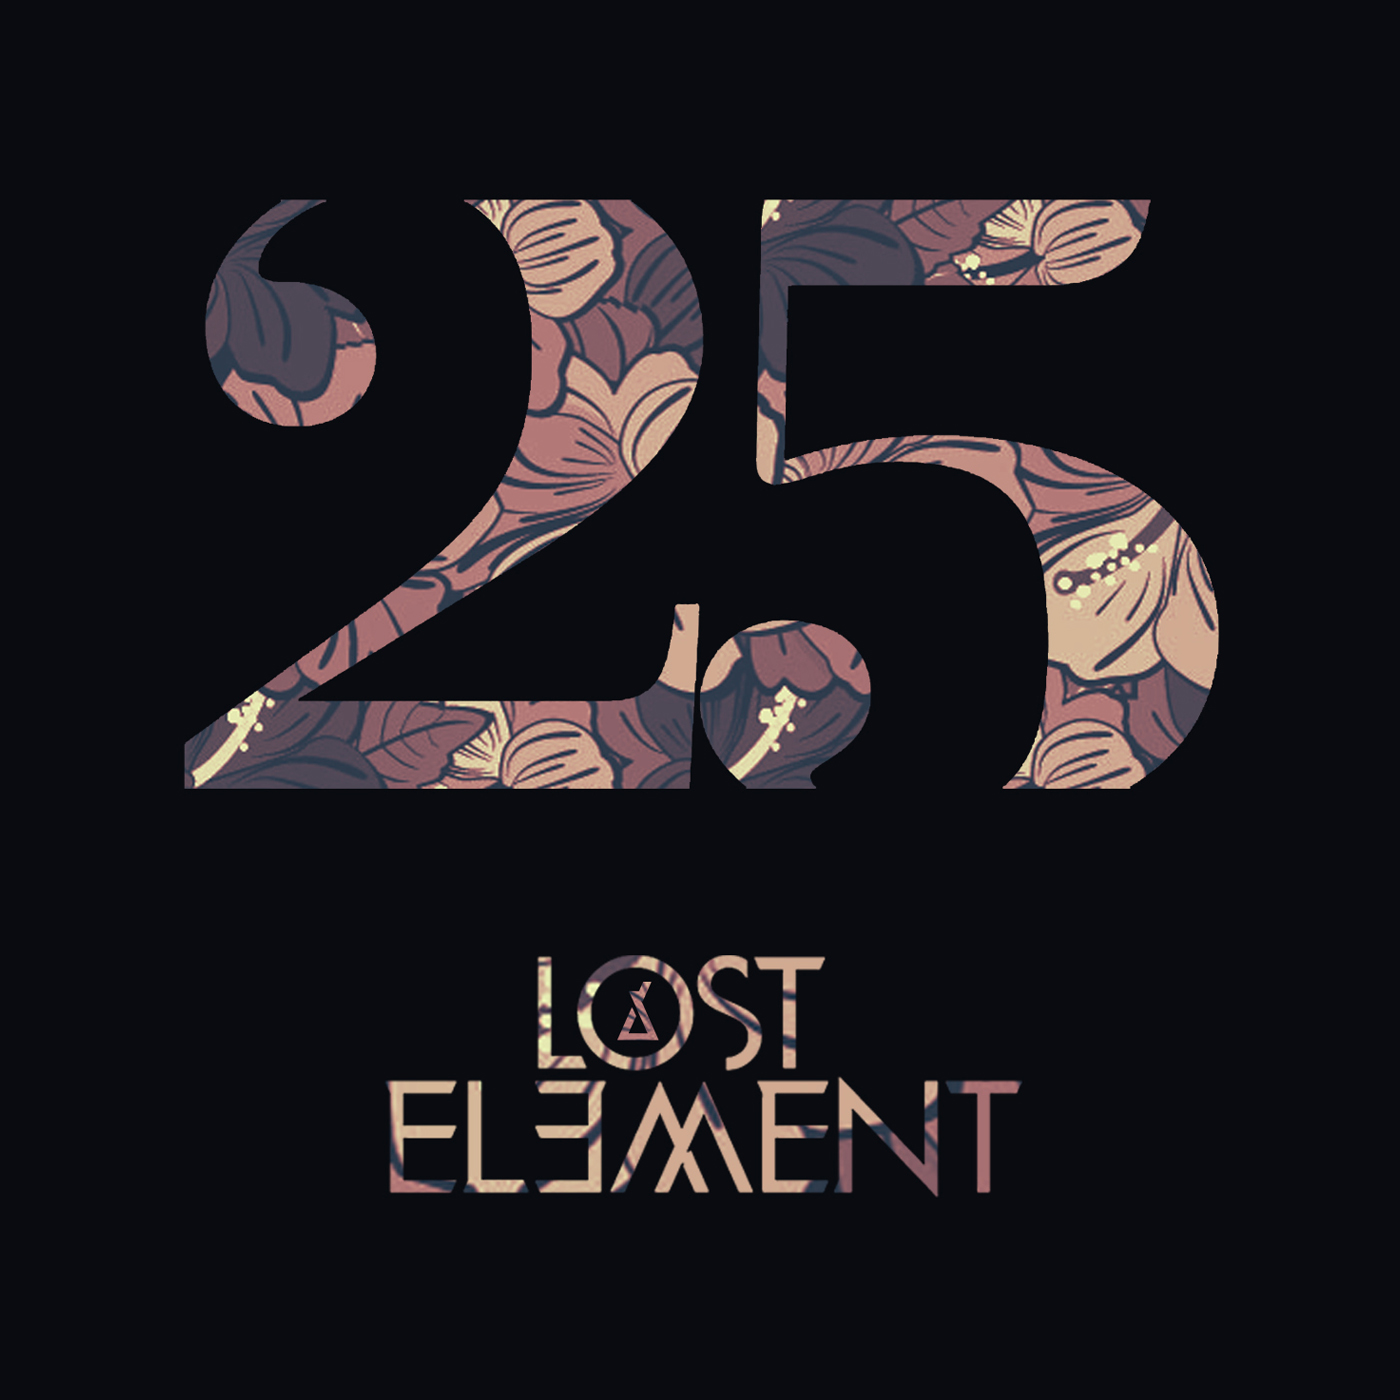 LOST ELEMENT_25_SINGLE_itunesCOVER.jpg